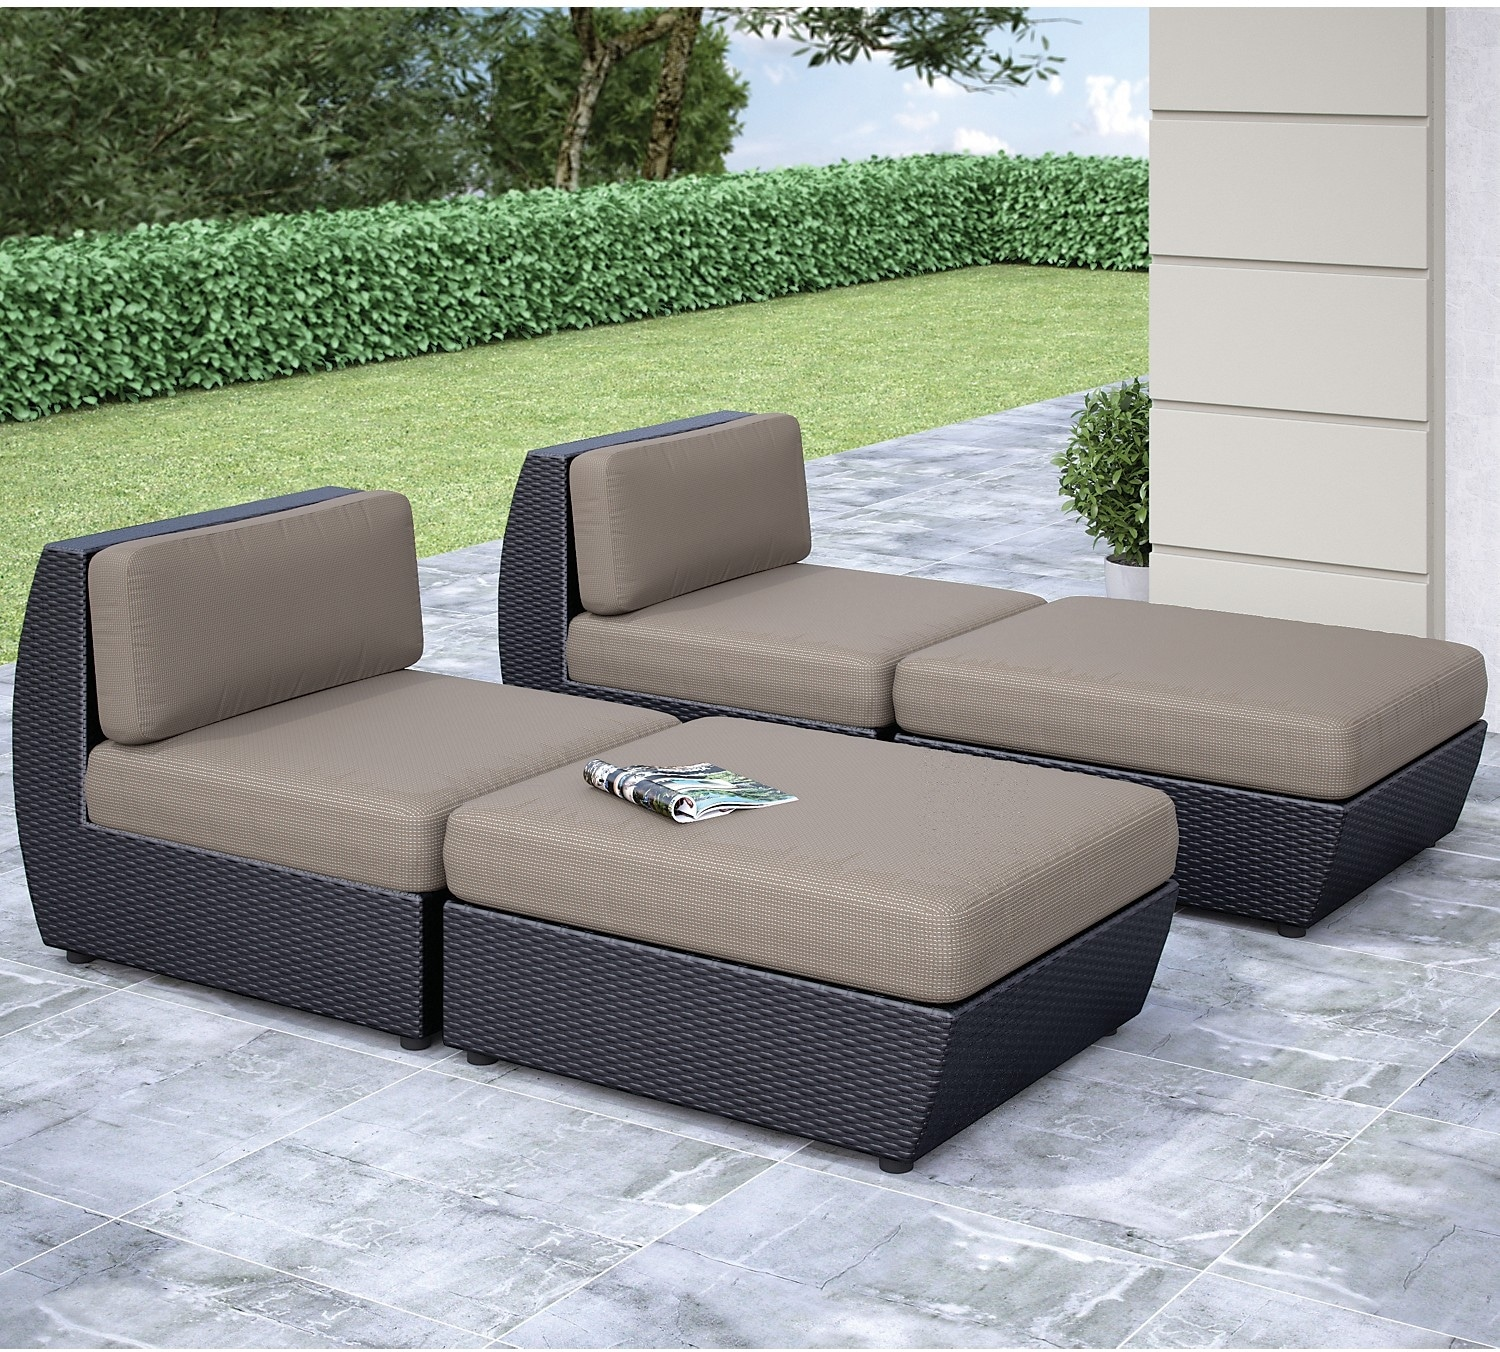 Outdoor Furniture - Seattle Lounger Set